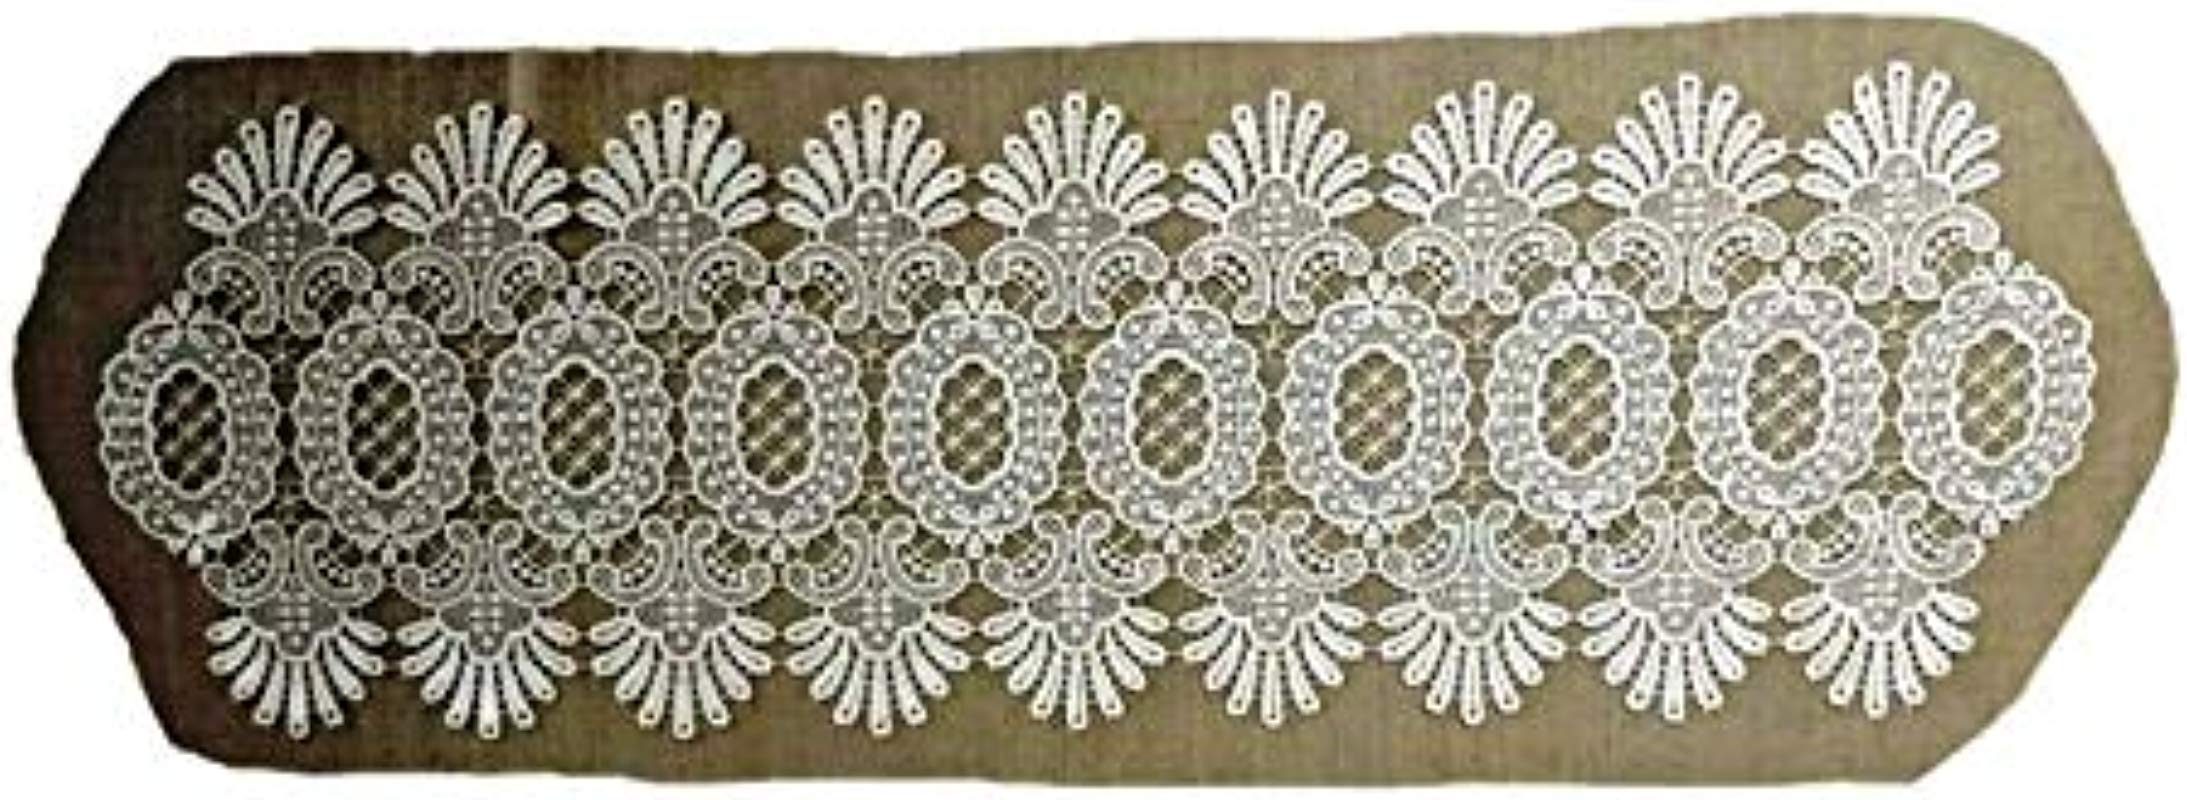 Doily Boutique Table Runner Narrow In Antique White Victorian Lace Size 10 X 60 Inches Handmade